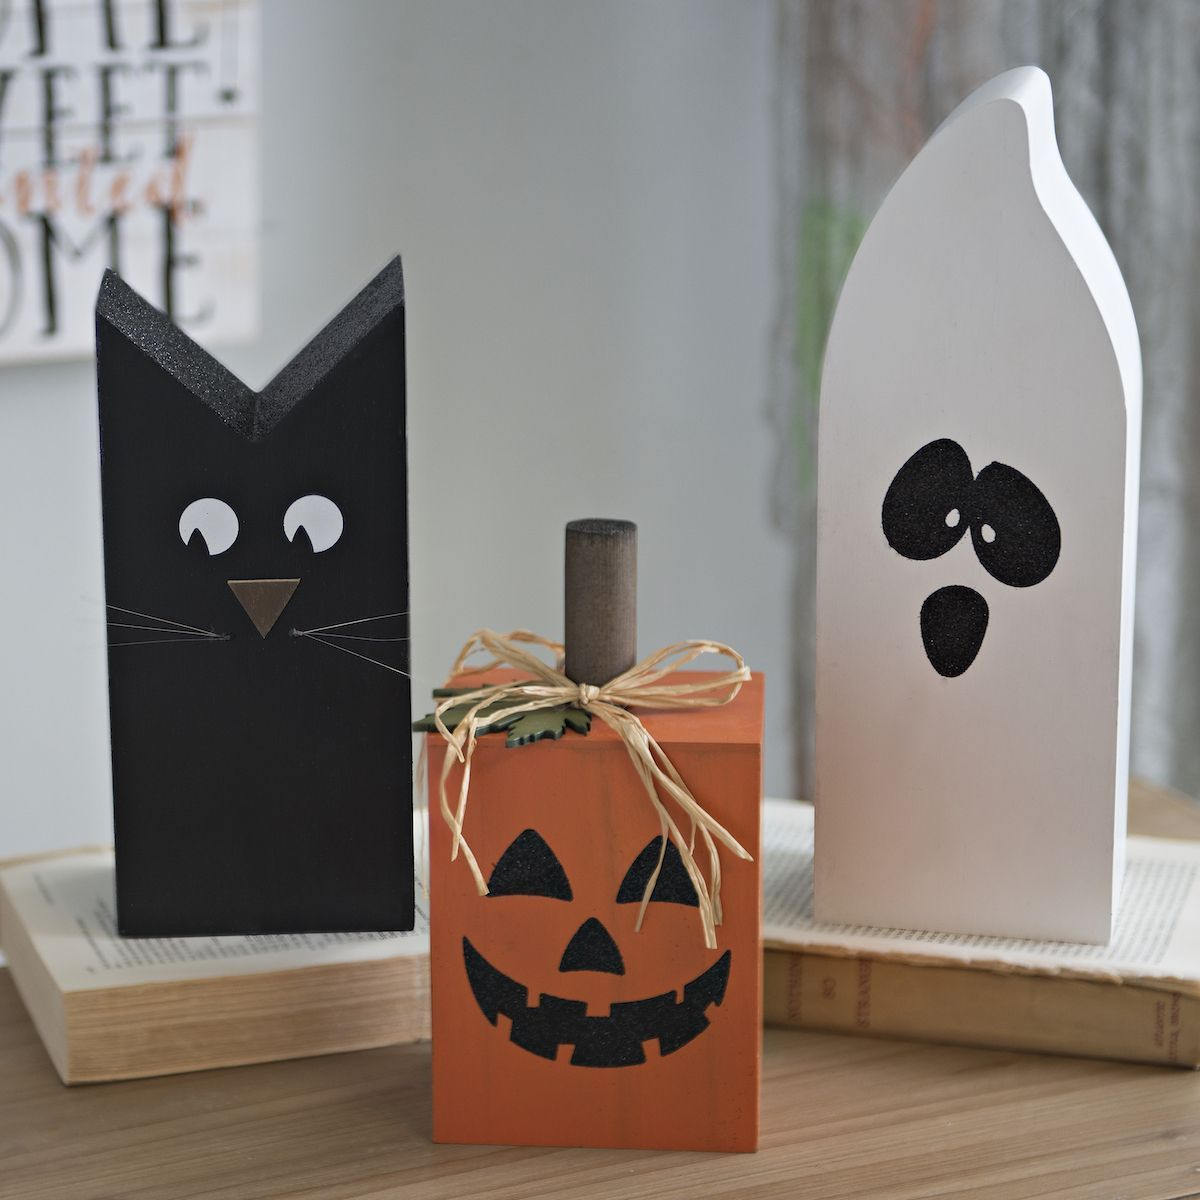 Astounding 20+ Best Homemade Halloween Decorations Ideas   - Kids Halloween Decorations